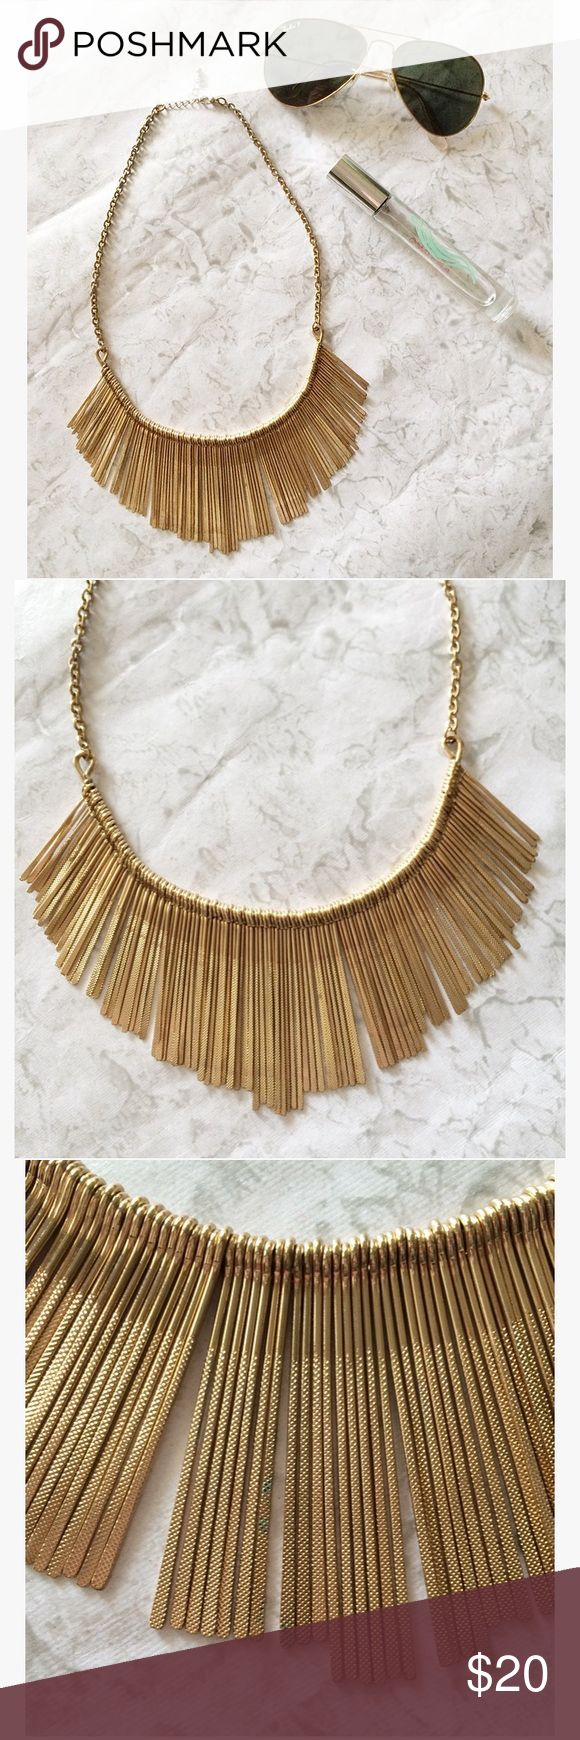 """Gold Fringe Necklace A golden fringe necklace, with textured matchstick fringe. Bib necklace fit, with adjustable length. Condition: gently pre-loved. Very minor discoloration on one side (the """"back"""") and back of the chain. Stock photos show actual necklace. Model photo shows similar necklace and styling suggestion. Very similar to a matchstick bib necklace sold at Anthropologie! Considering ALL offers on makeup and jewelry bundles! Feel free to """"lowball."""" Jewelry Necklaces"""